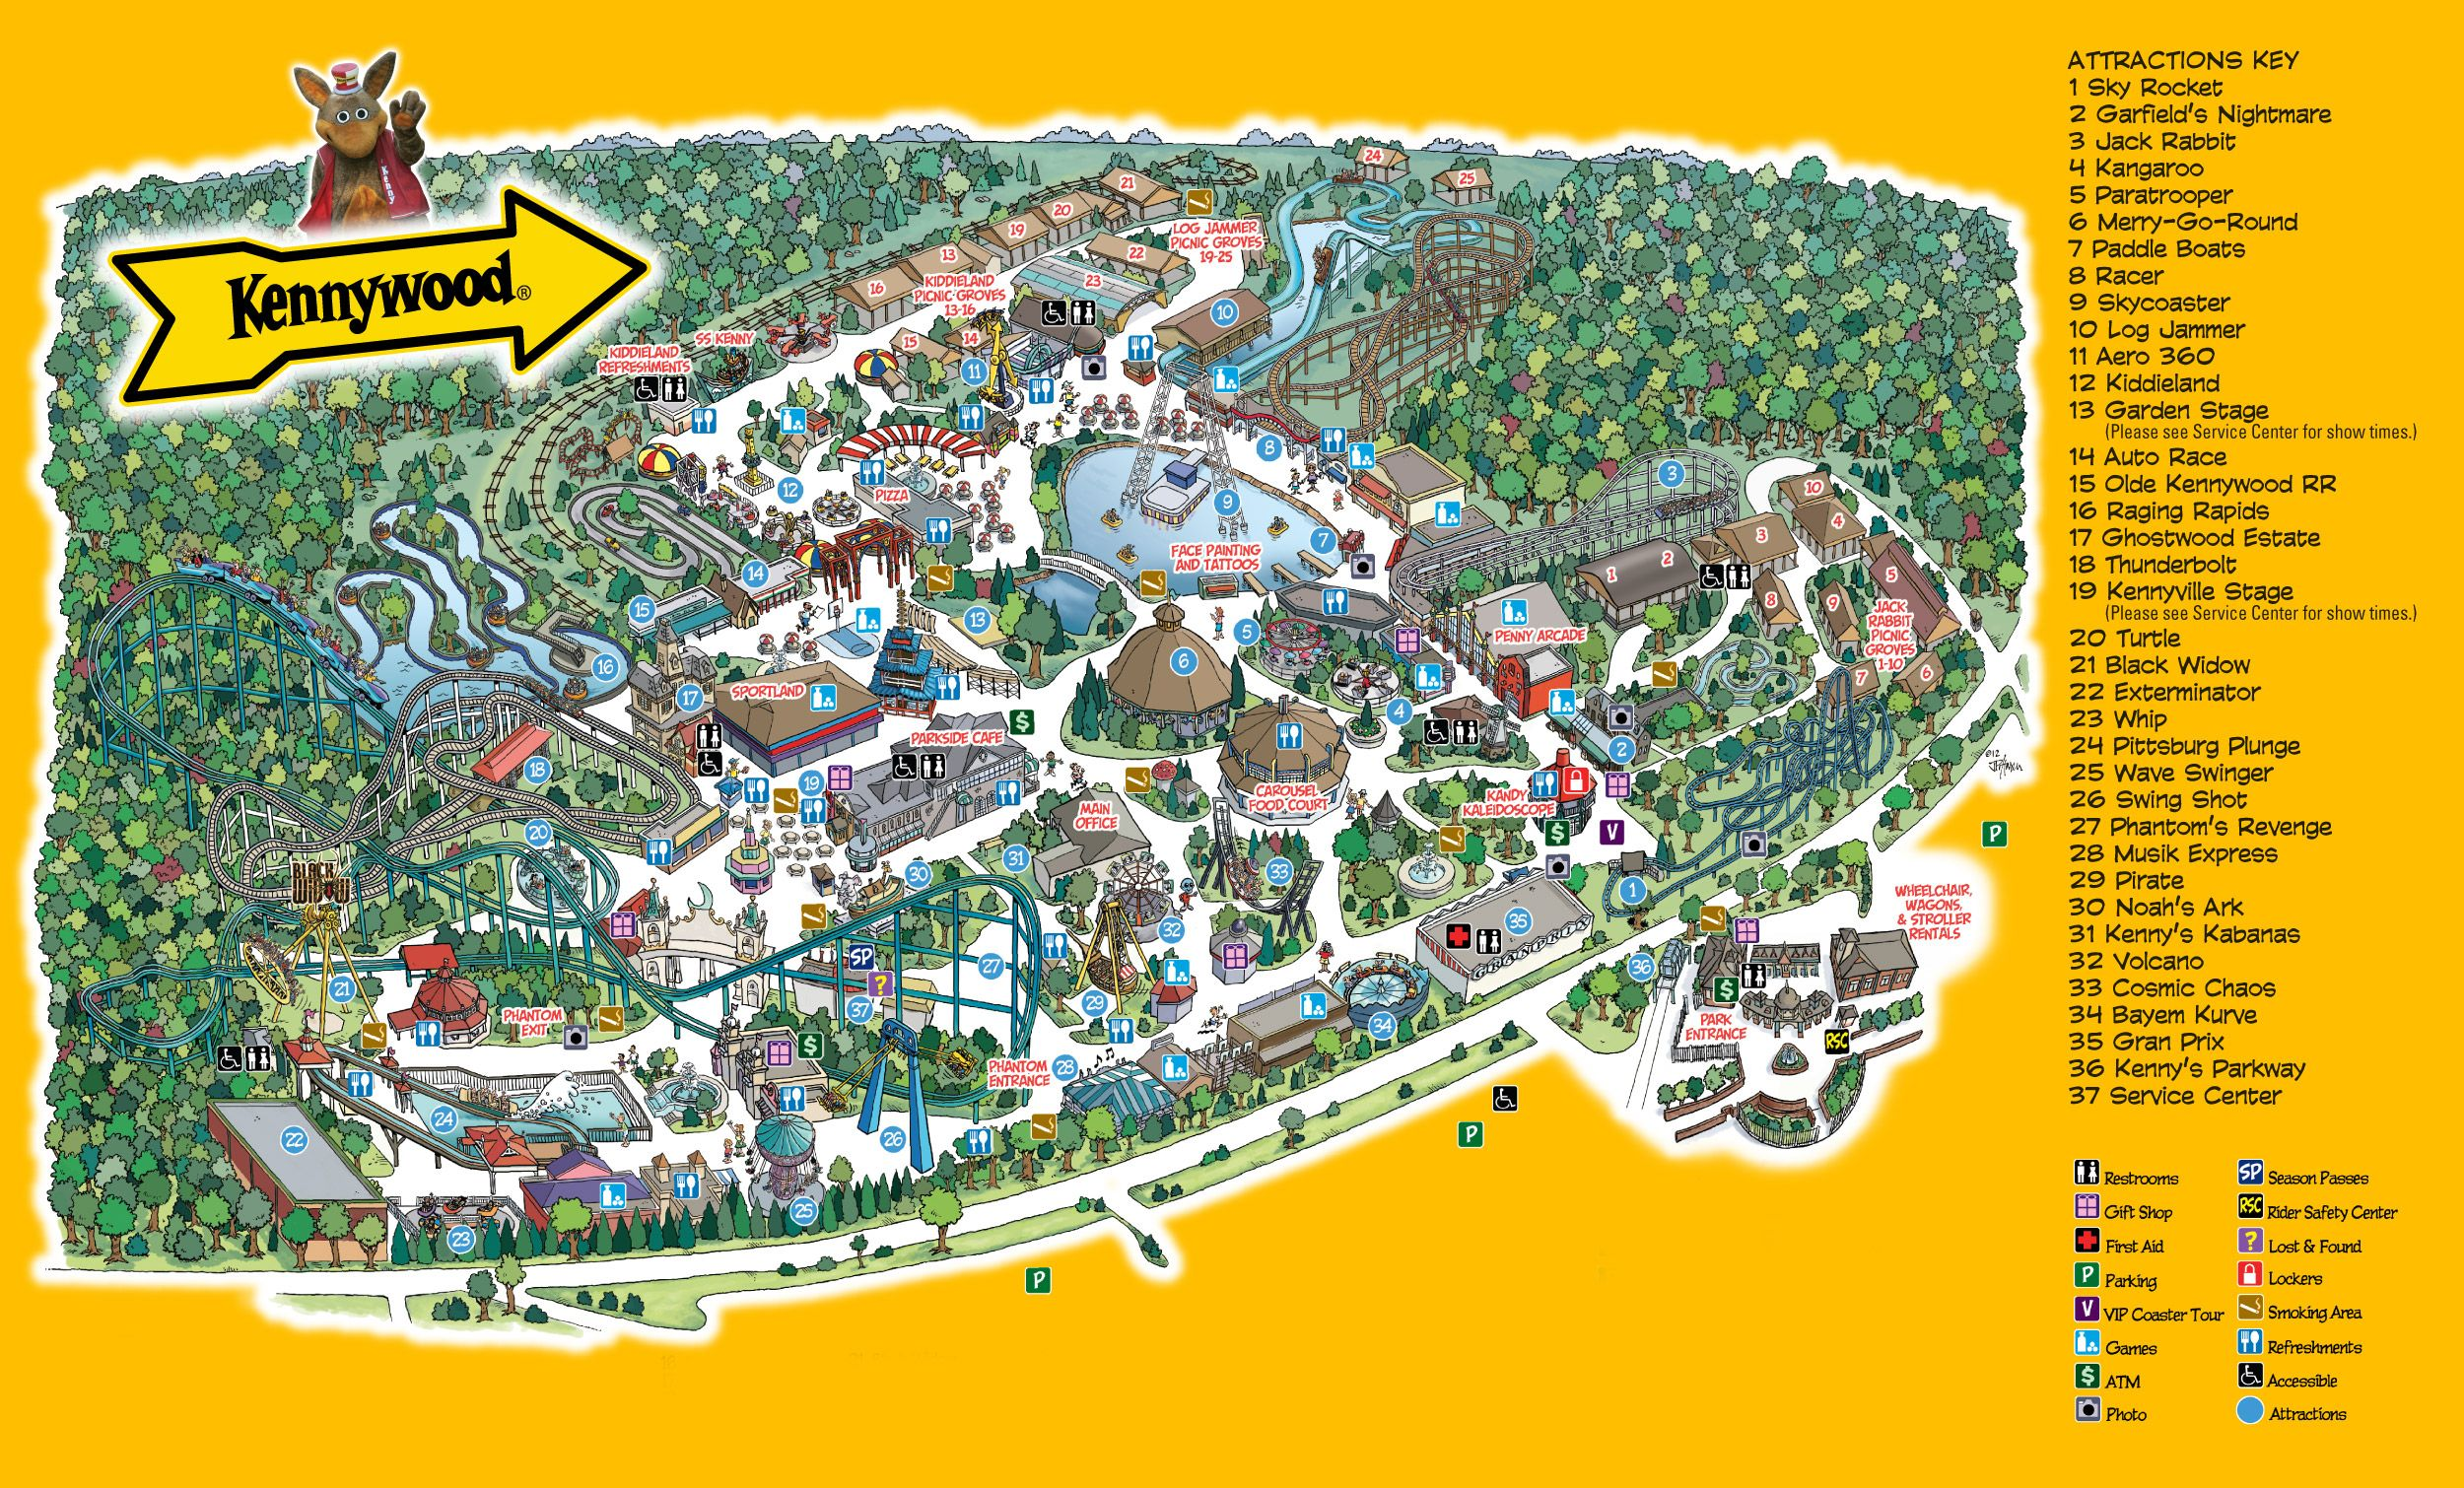 Kennywood Map on lehigh valley international airport map, kings dominion map, seaworld map, consol energy center map, delgrosso's amusement park map, wyandot lake map, six flags map, michigan's adventure map, oakmont country club map, lesourdsville lake amusement park map, pnc park map, holiday world map, dollywood map, funtown splashtown usa map, walibi holland map, kings island map, disneyland map, white swan park map, mt. olympus water & theme park map, cedar point map,